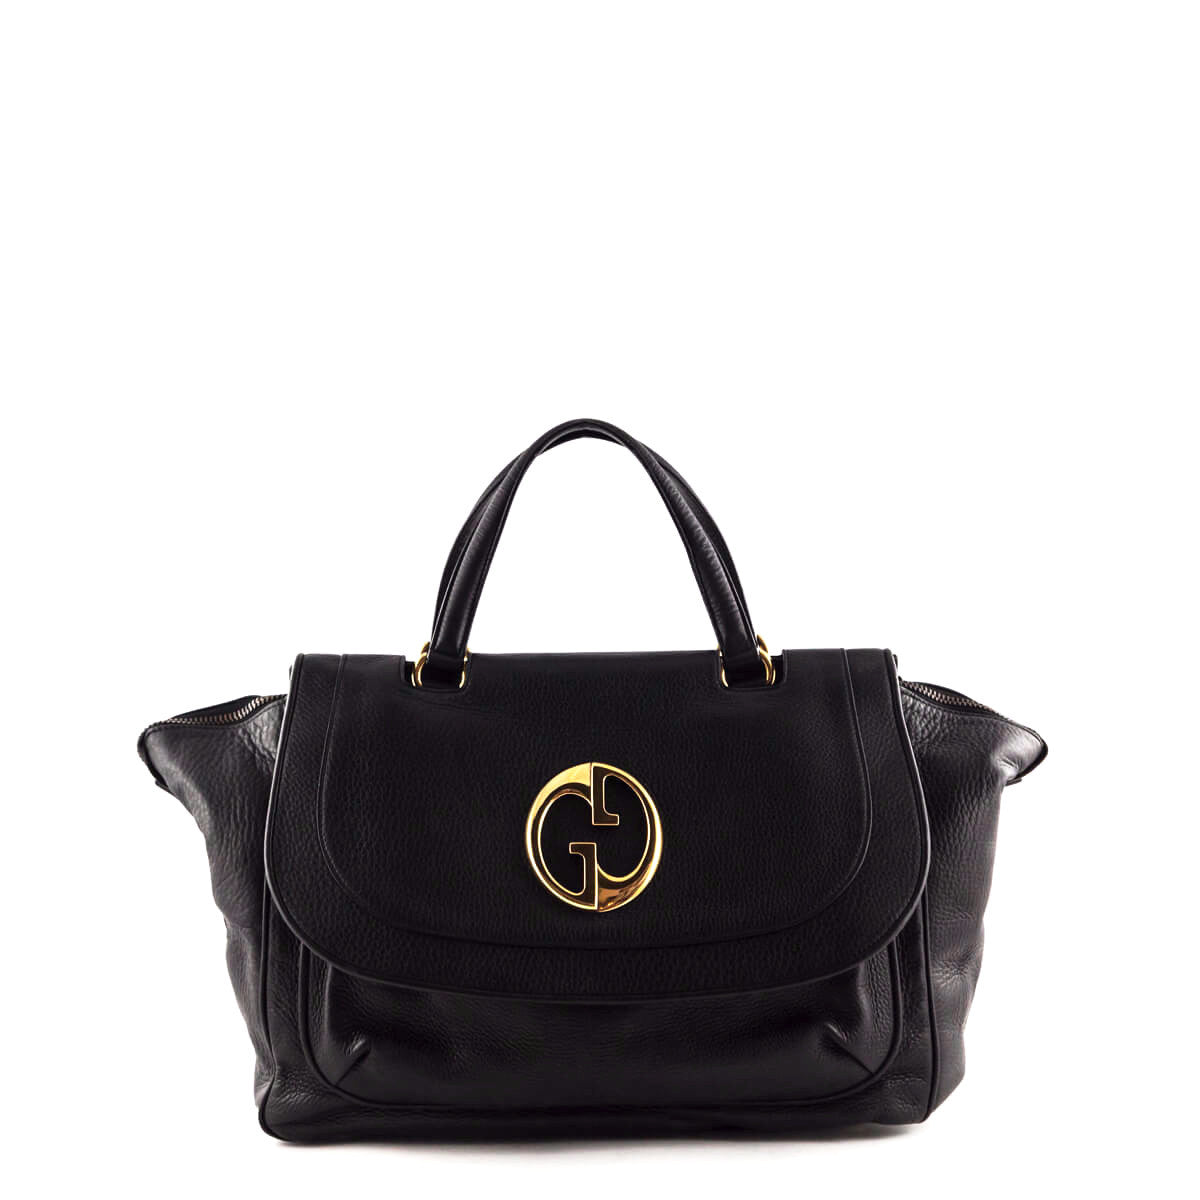 Pre-owned - Patent leather handbag Gucci xU8MOswT